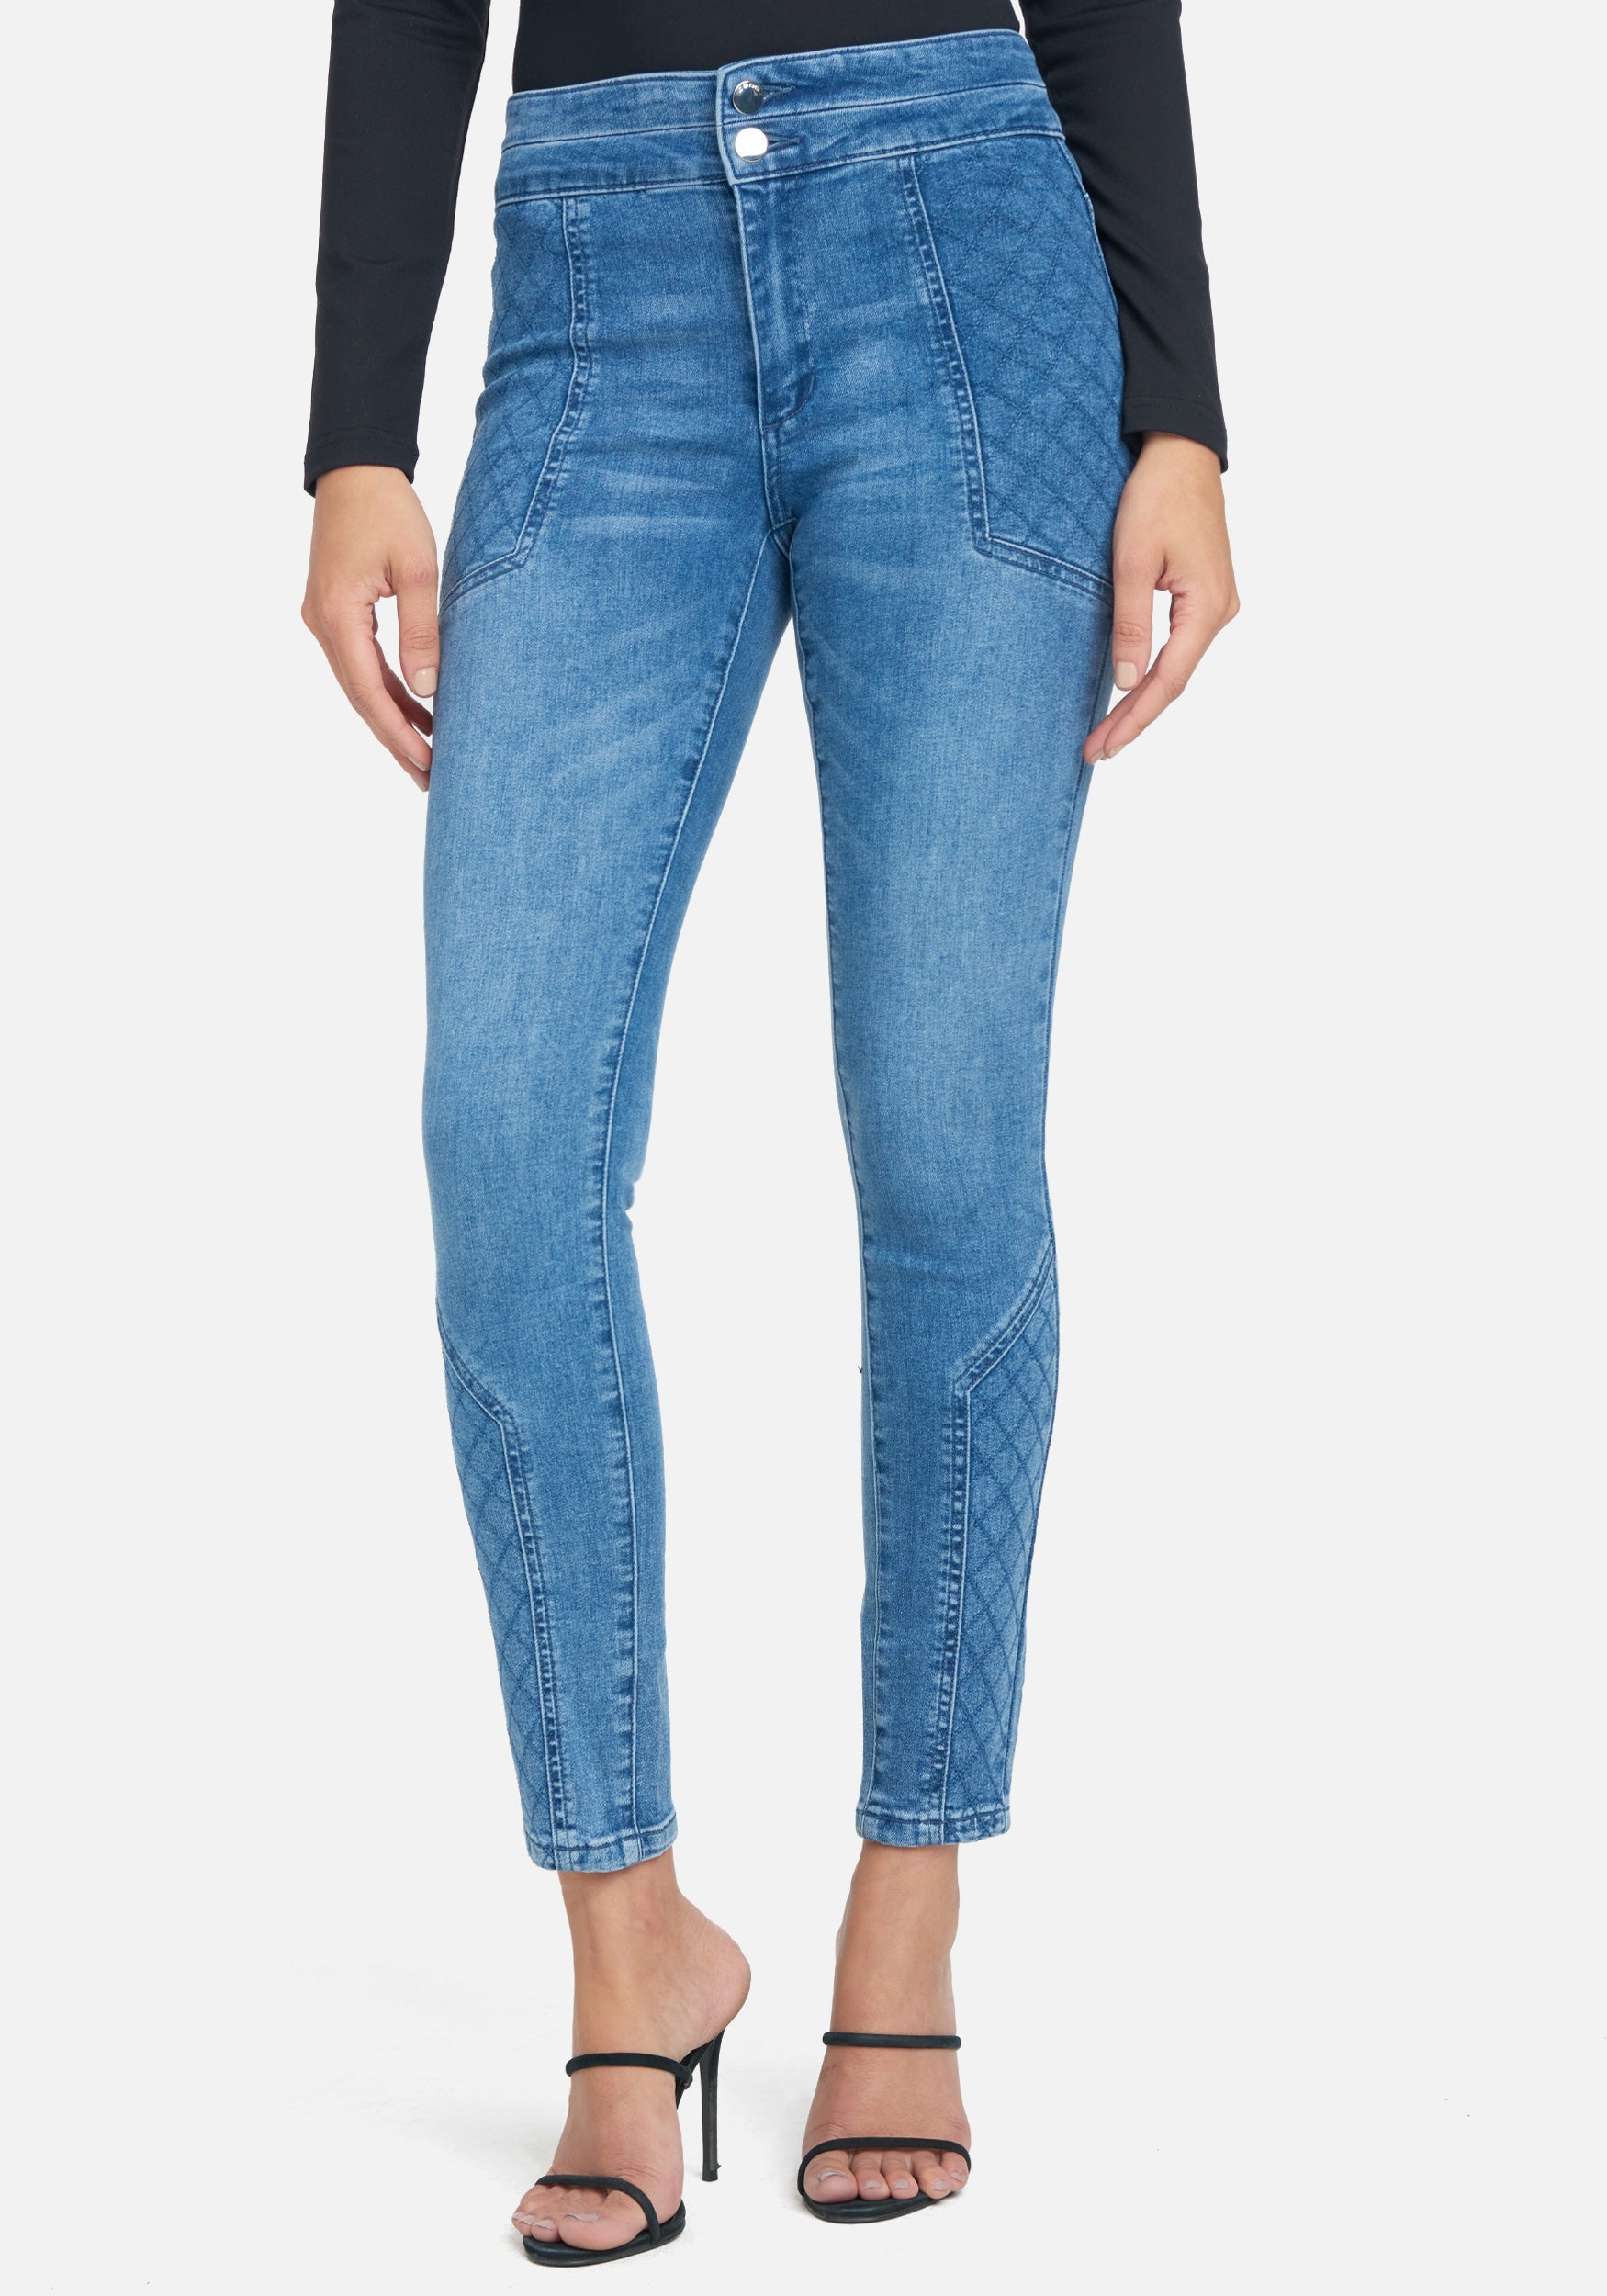 Bebe Women's Quilted Stitch Skinny Jeans, Size 25 in Medium Blue Wash Cotton/Spandex